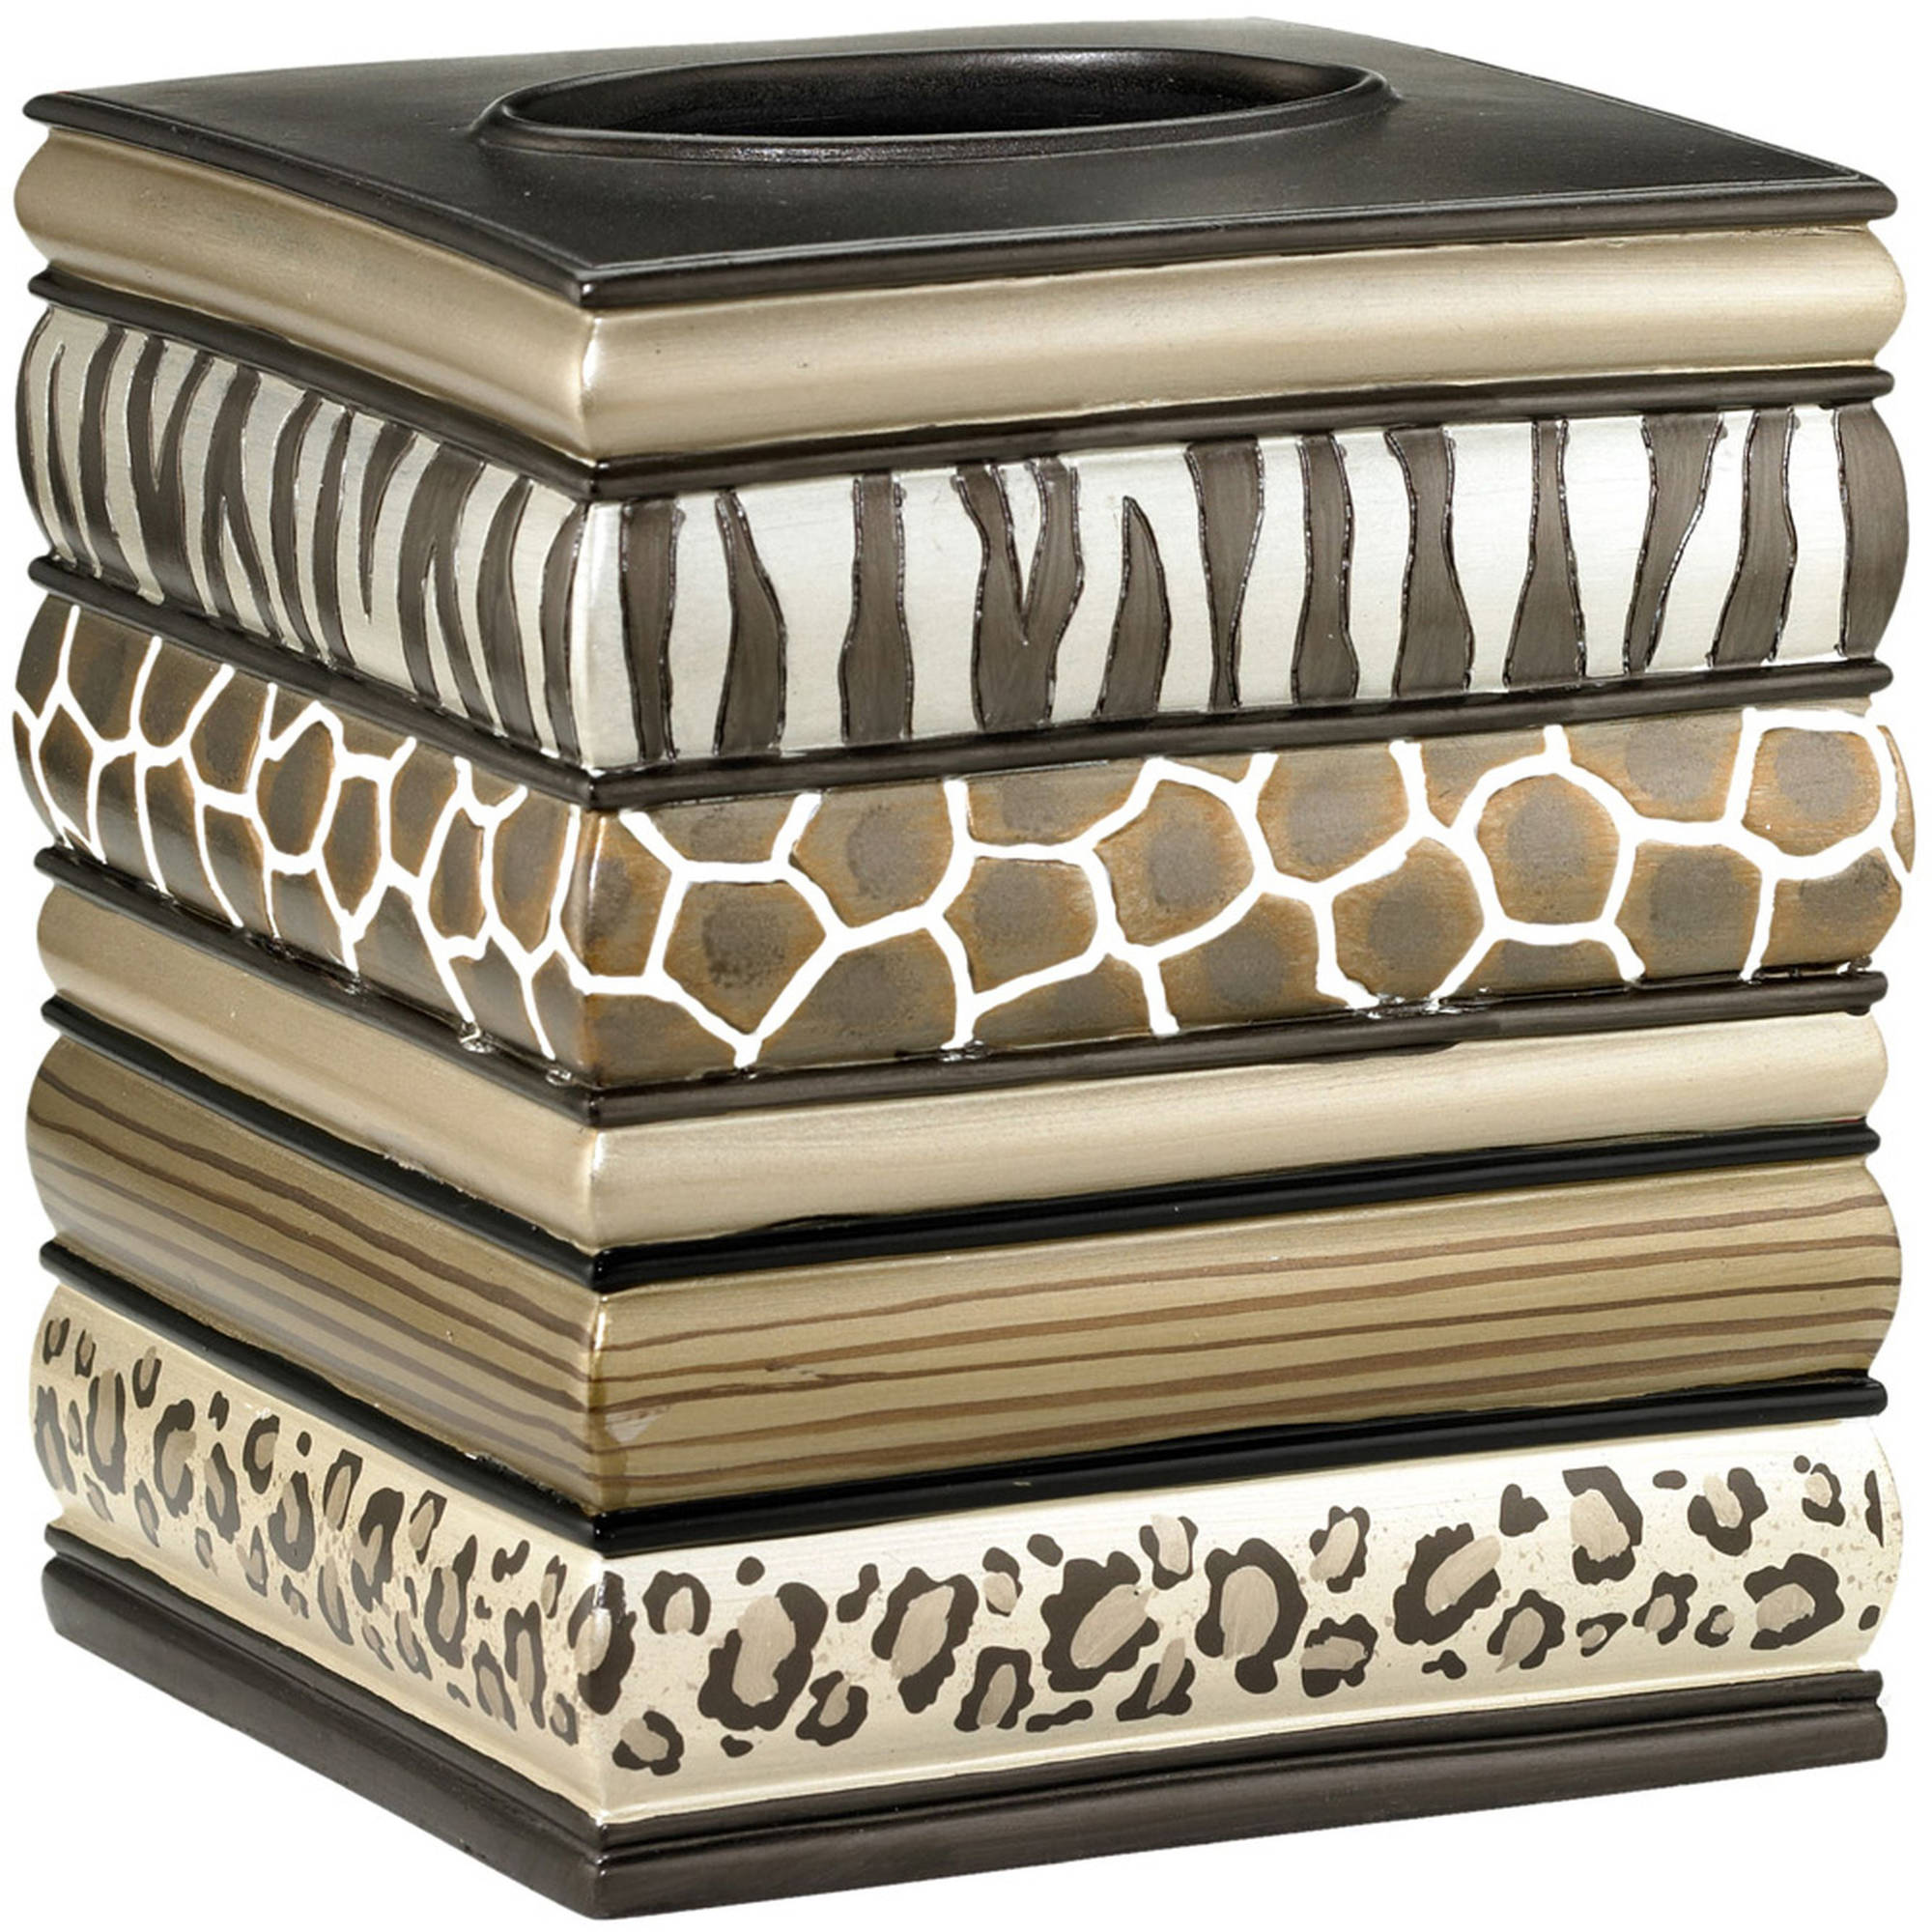 Popular Bath Safari Stripes Bath Collection Bathroom Tissue Box Cover